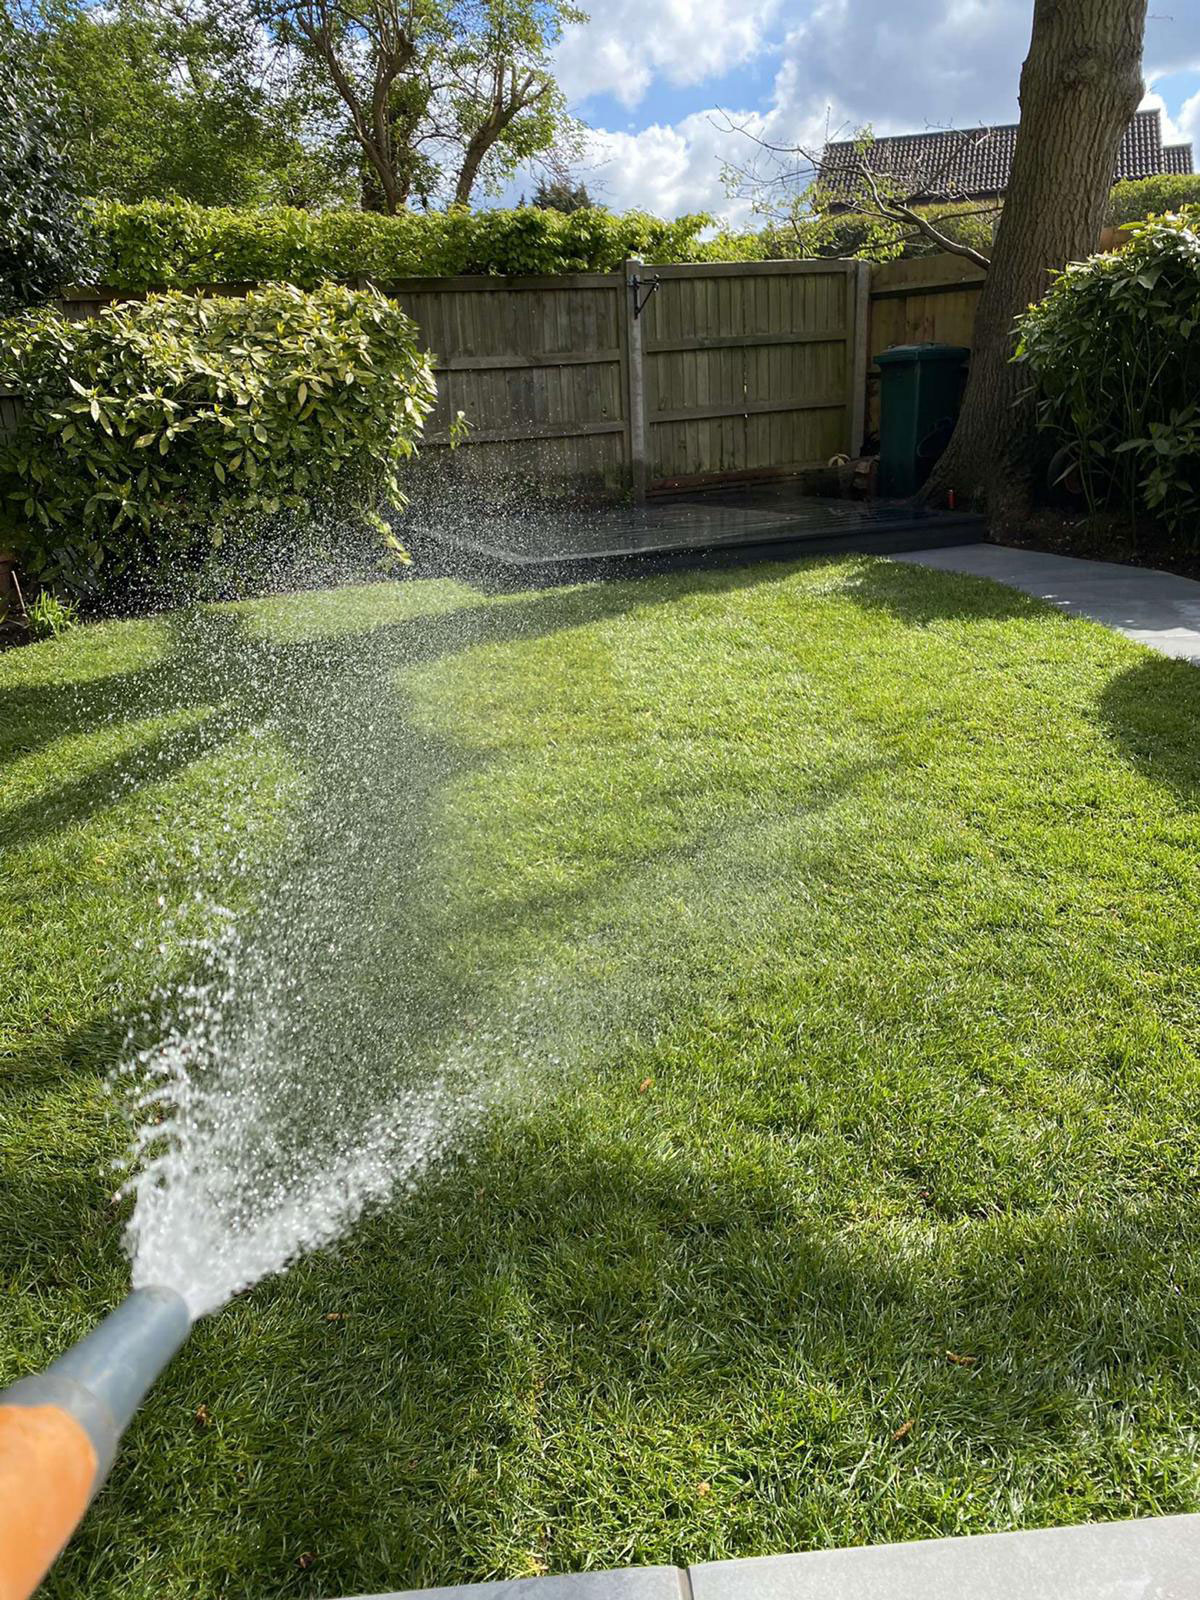 Watering newly laid lawn with a hosepipe